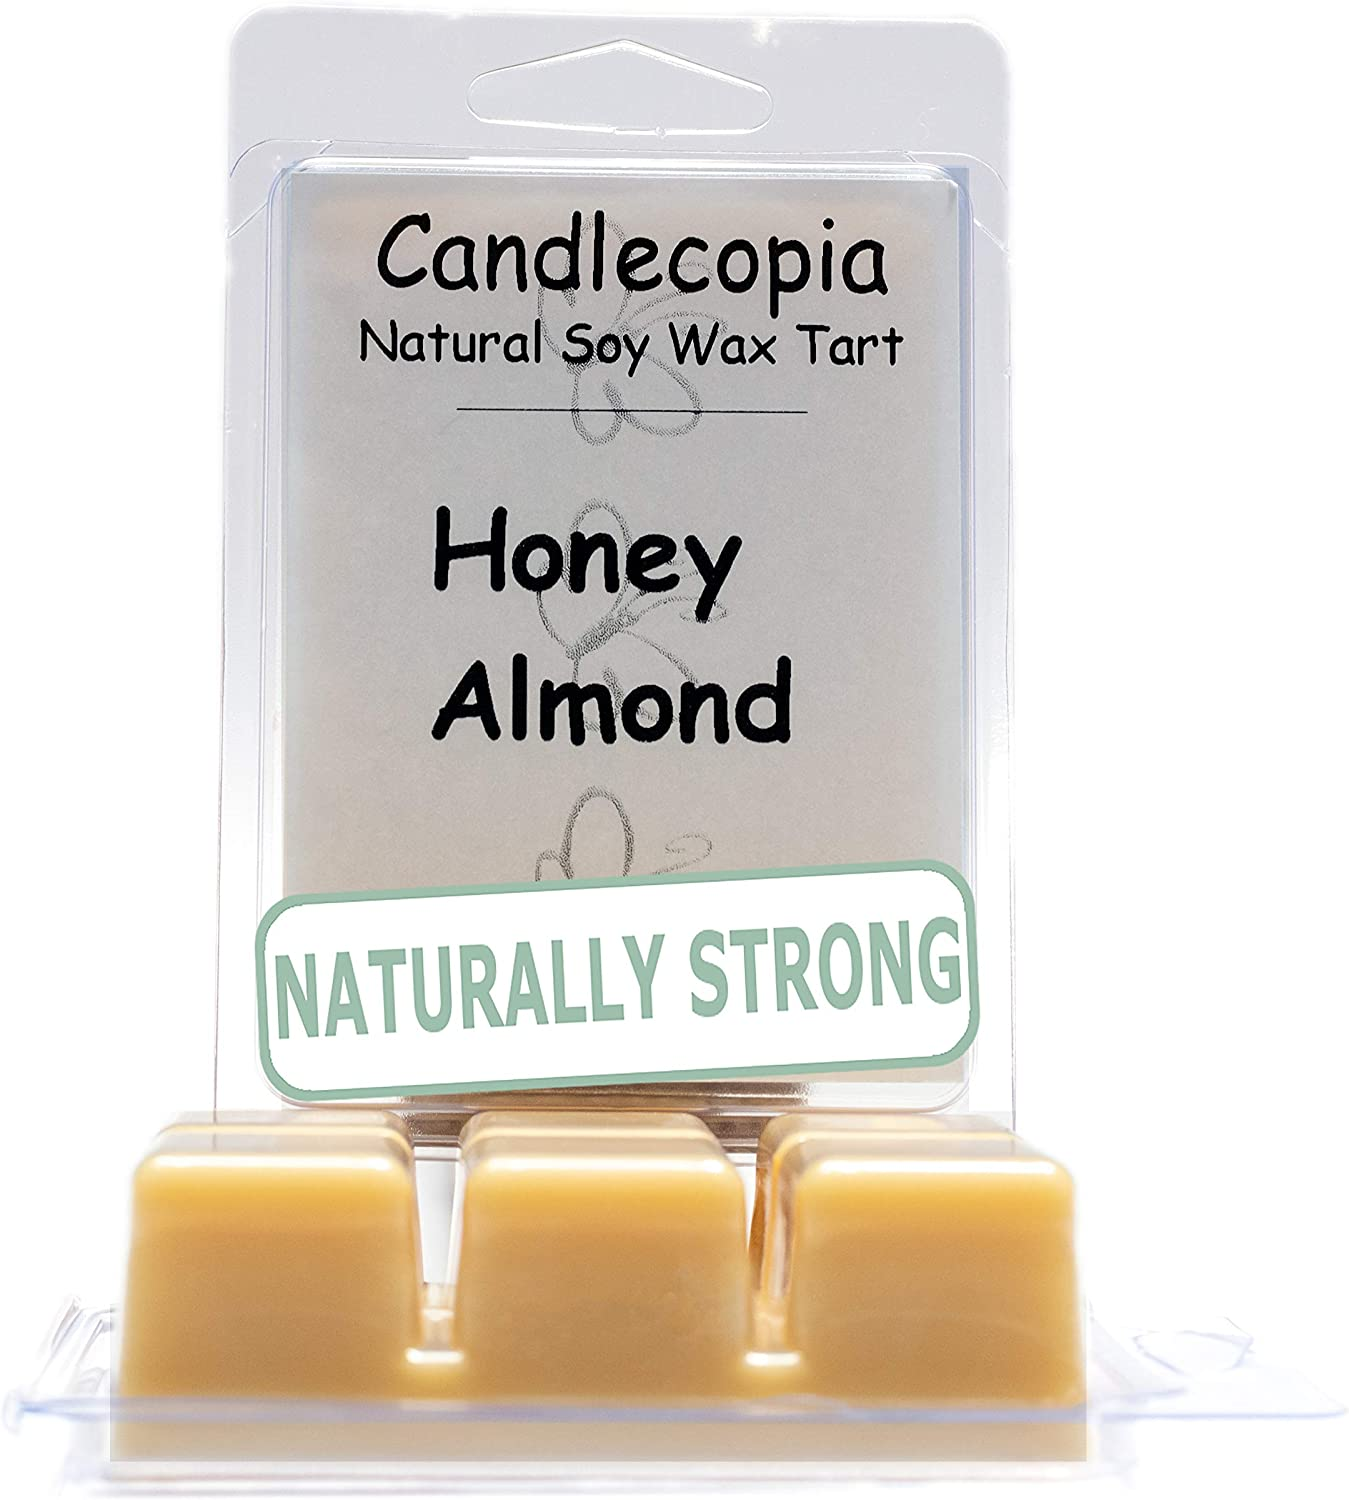 Home Fragrance Scented Soy Wax Melt All Soy Wax Melt Long Lasting Wax 2 Pack Handpoured Almond Wax Melt